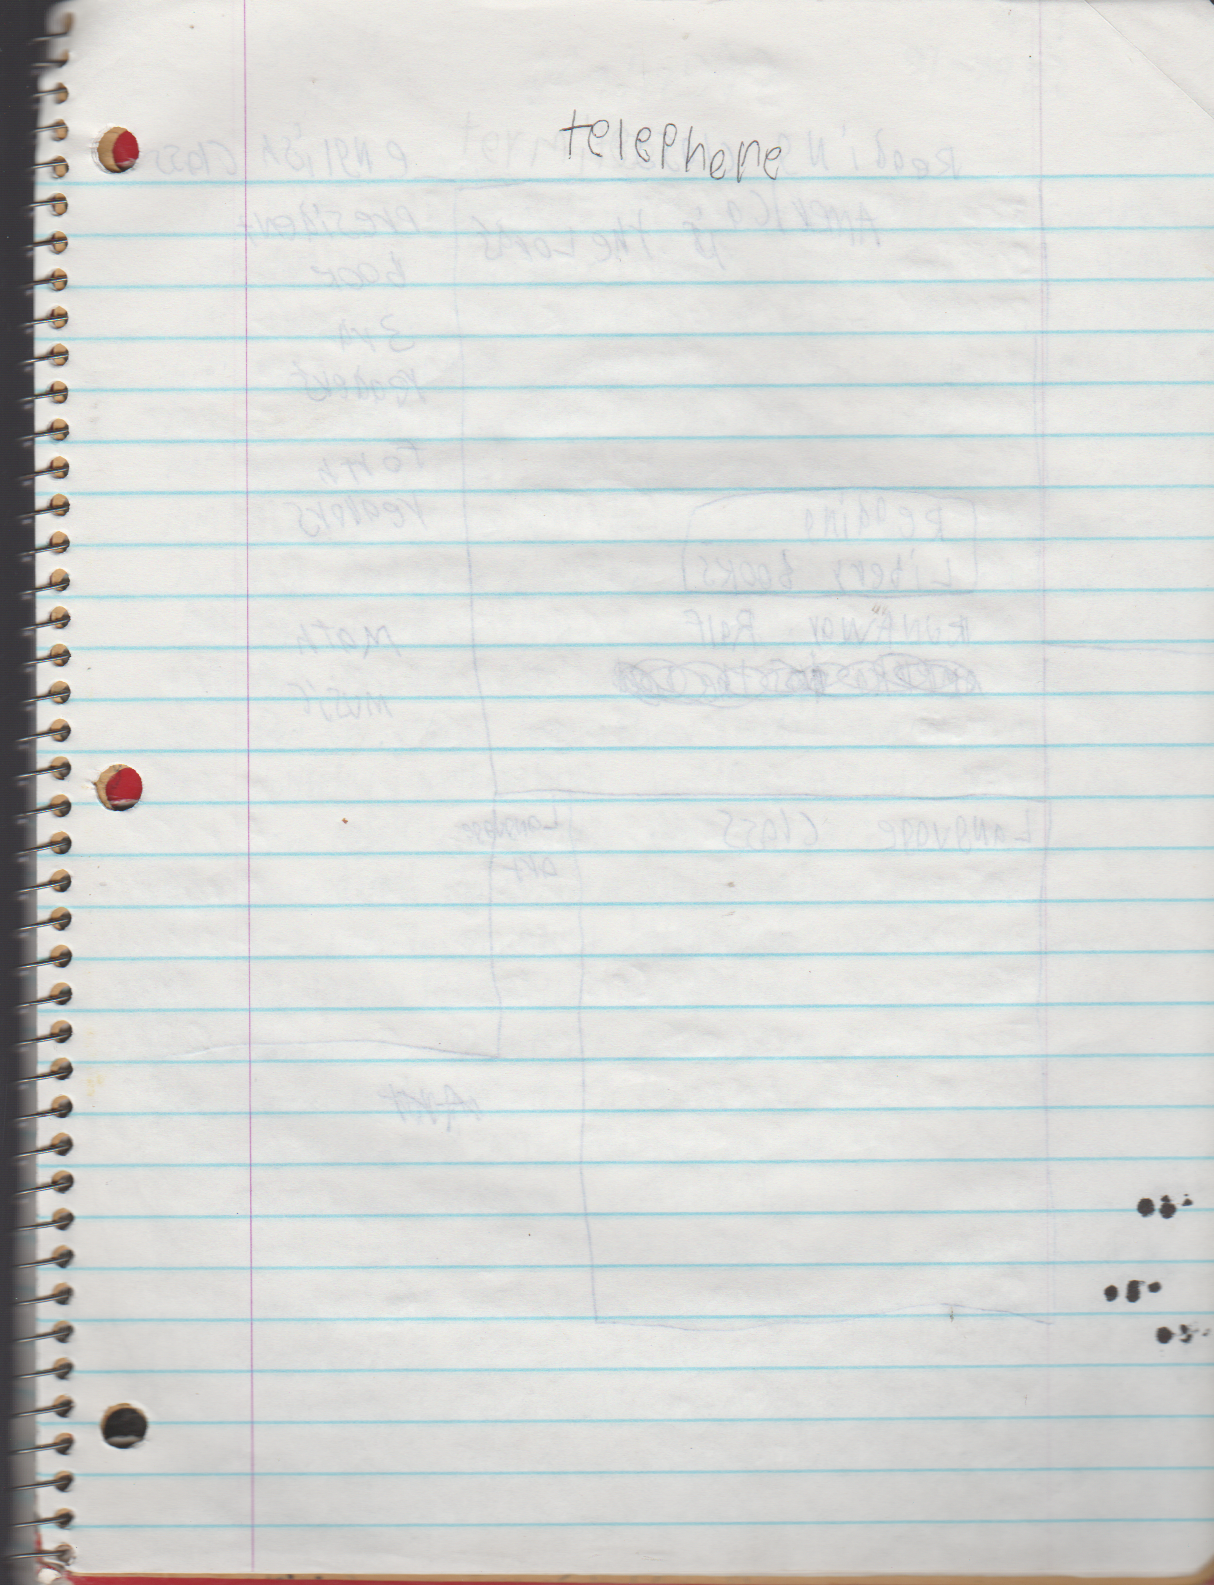 1996-08-18 - Saturday - 11 yr old Joey Arnold's School Book, dates through to 1998 apx, mostly 96, Writings, Drawings, Etc-098.png